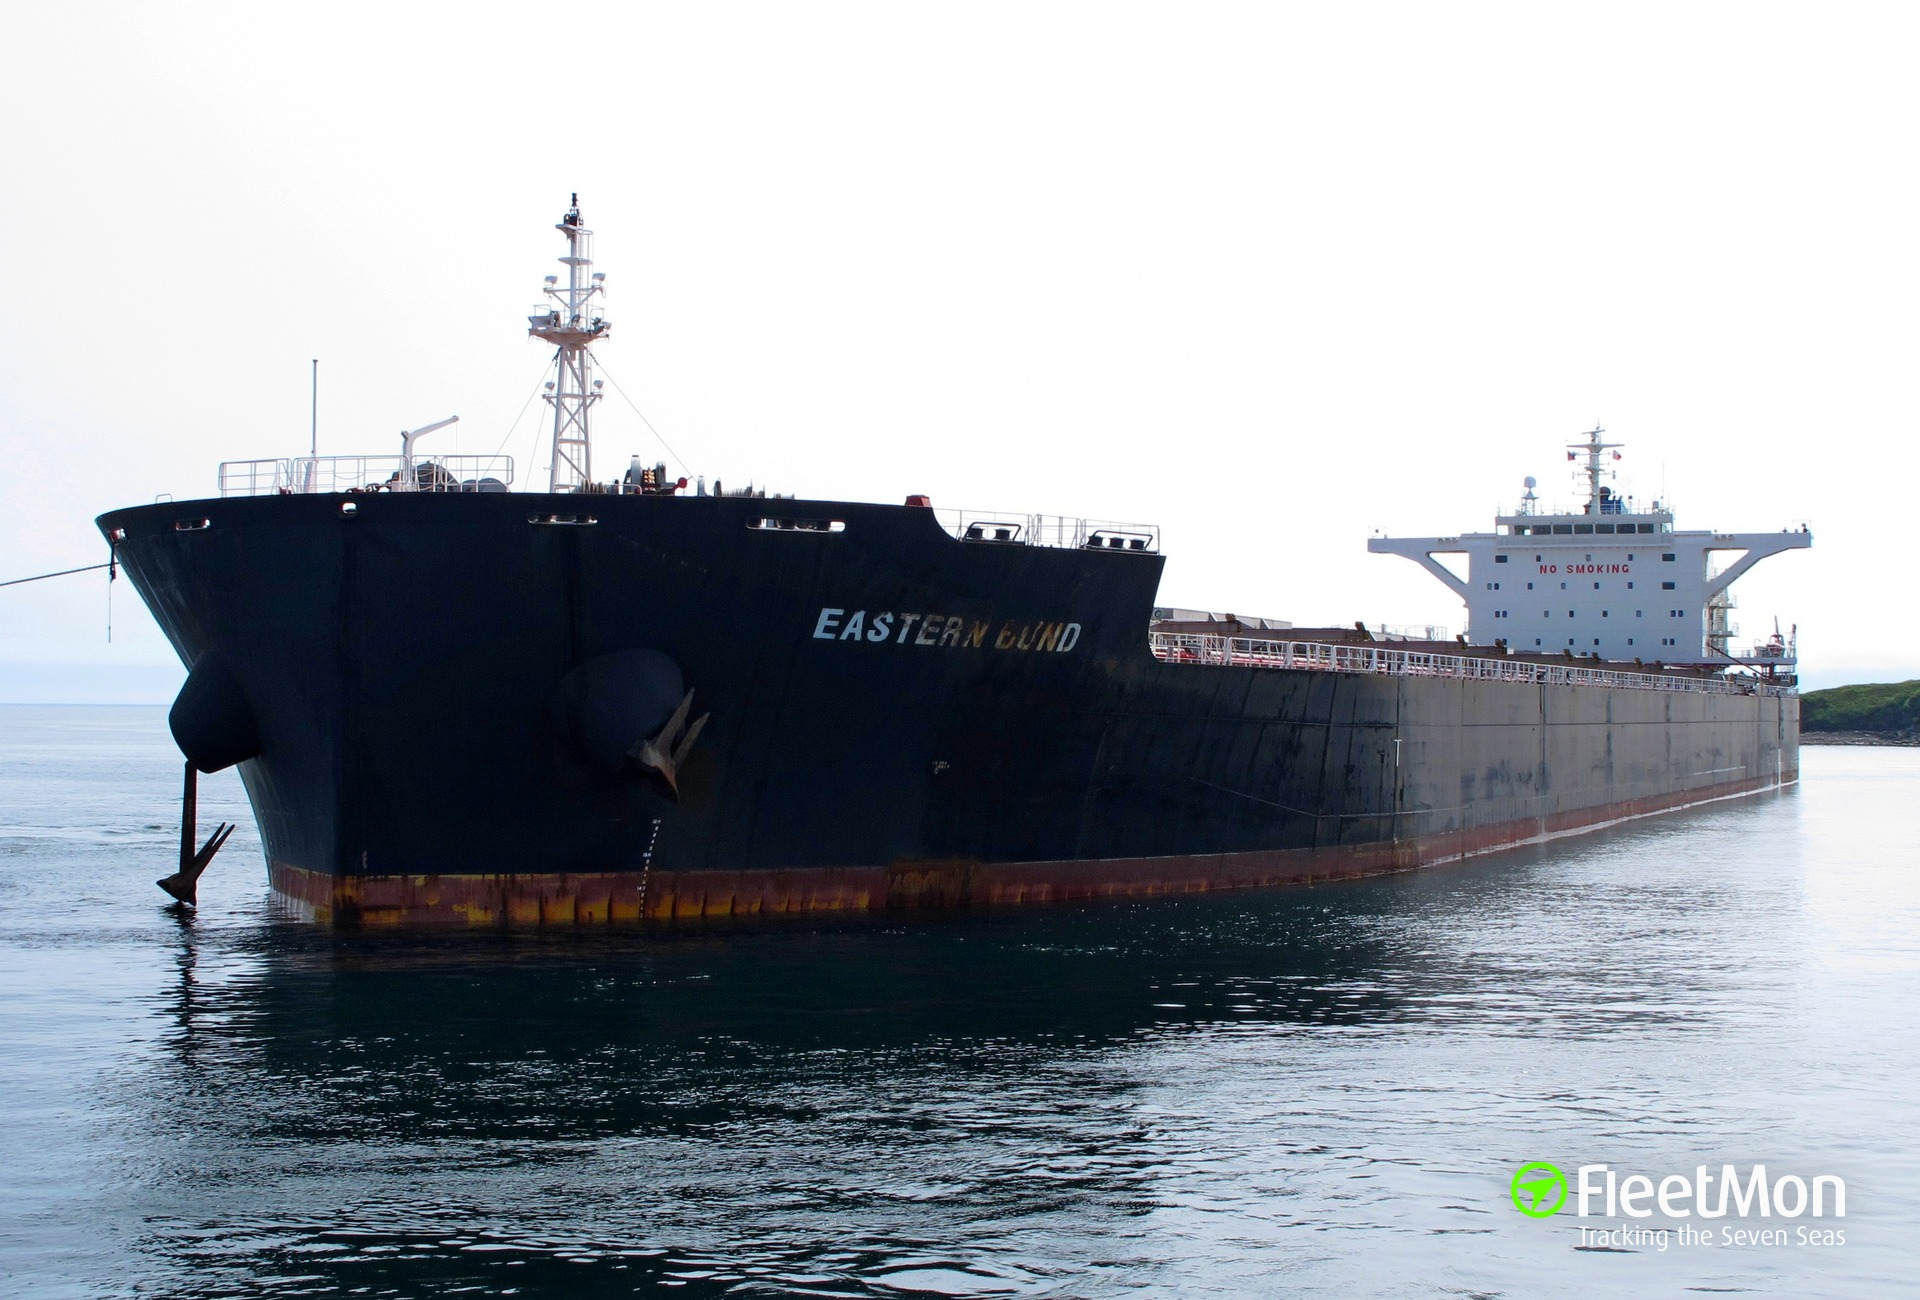 Capesize bulk carrier grounding in Suez, bottom breach. Prev news CORRECTION